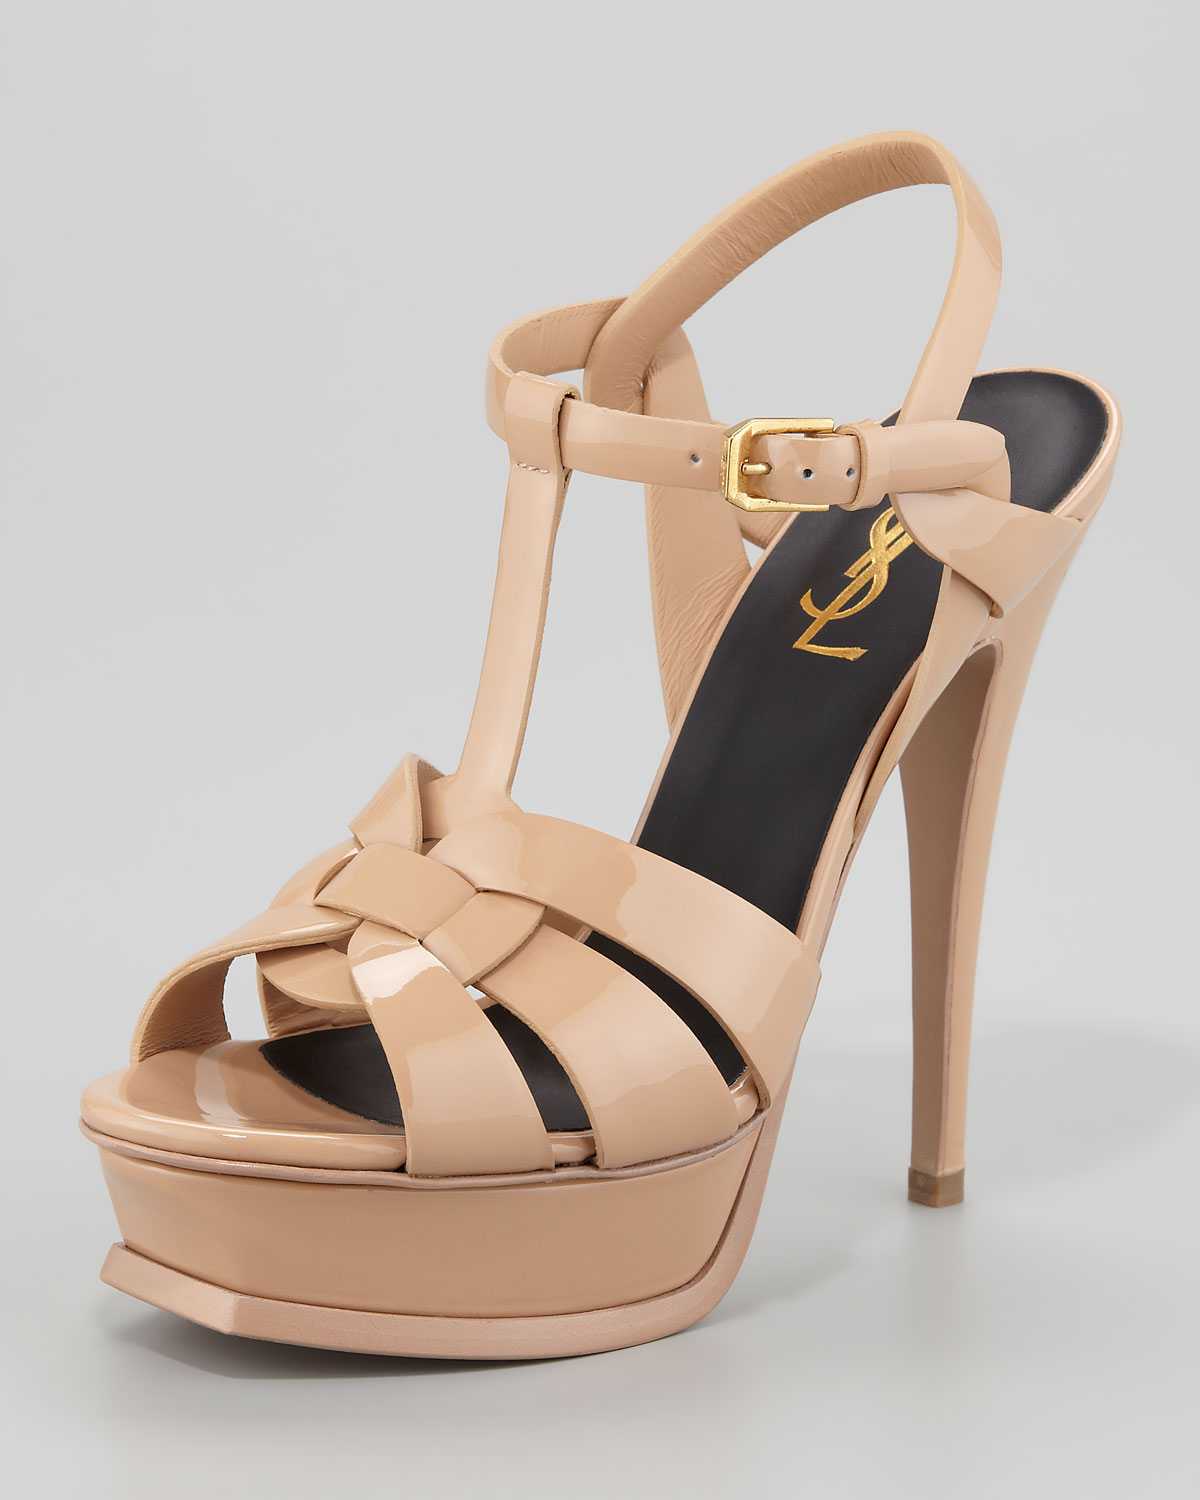 yves-saint-laurent-light-nude-tribute-patent-leather-platform-sandal-product-1-5981039-383939128.jpeg